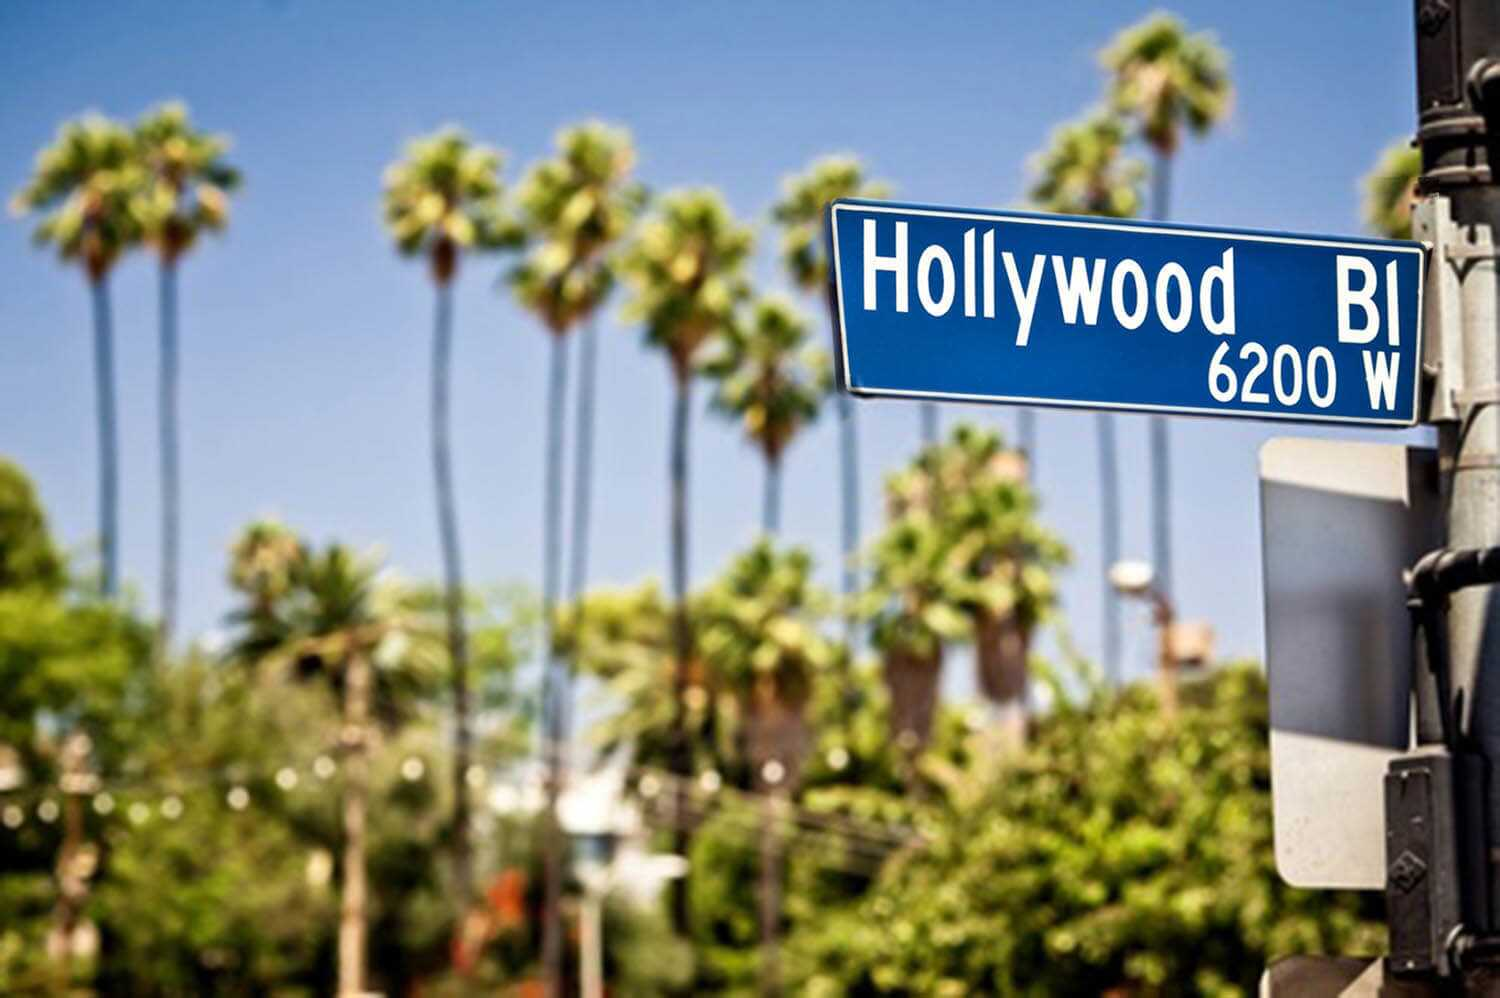 001-hollywoodblvd_plus